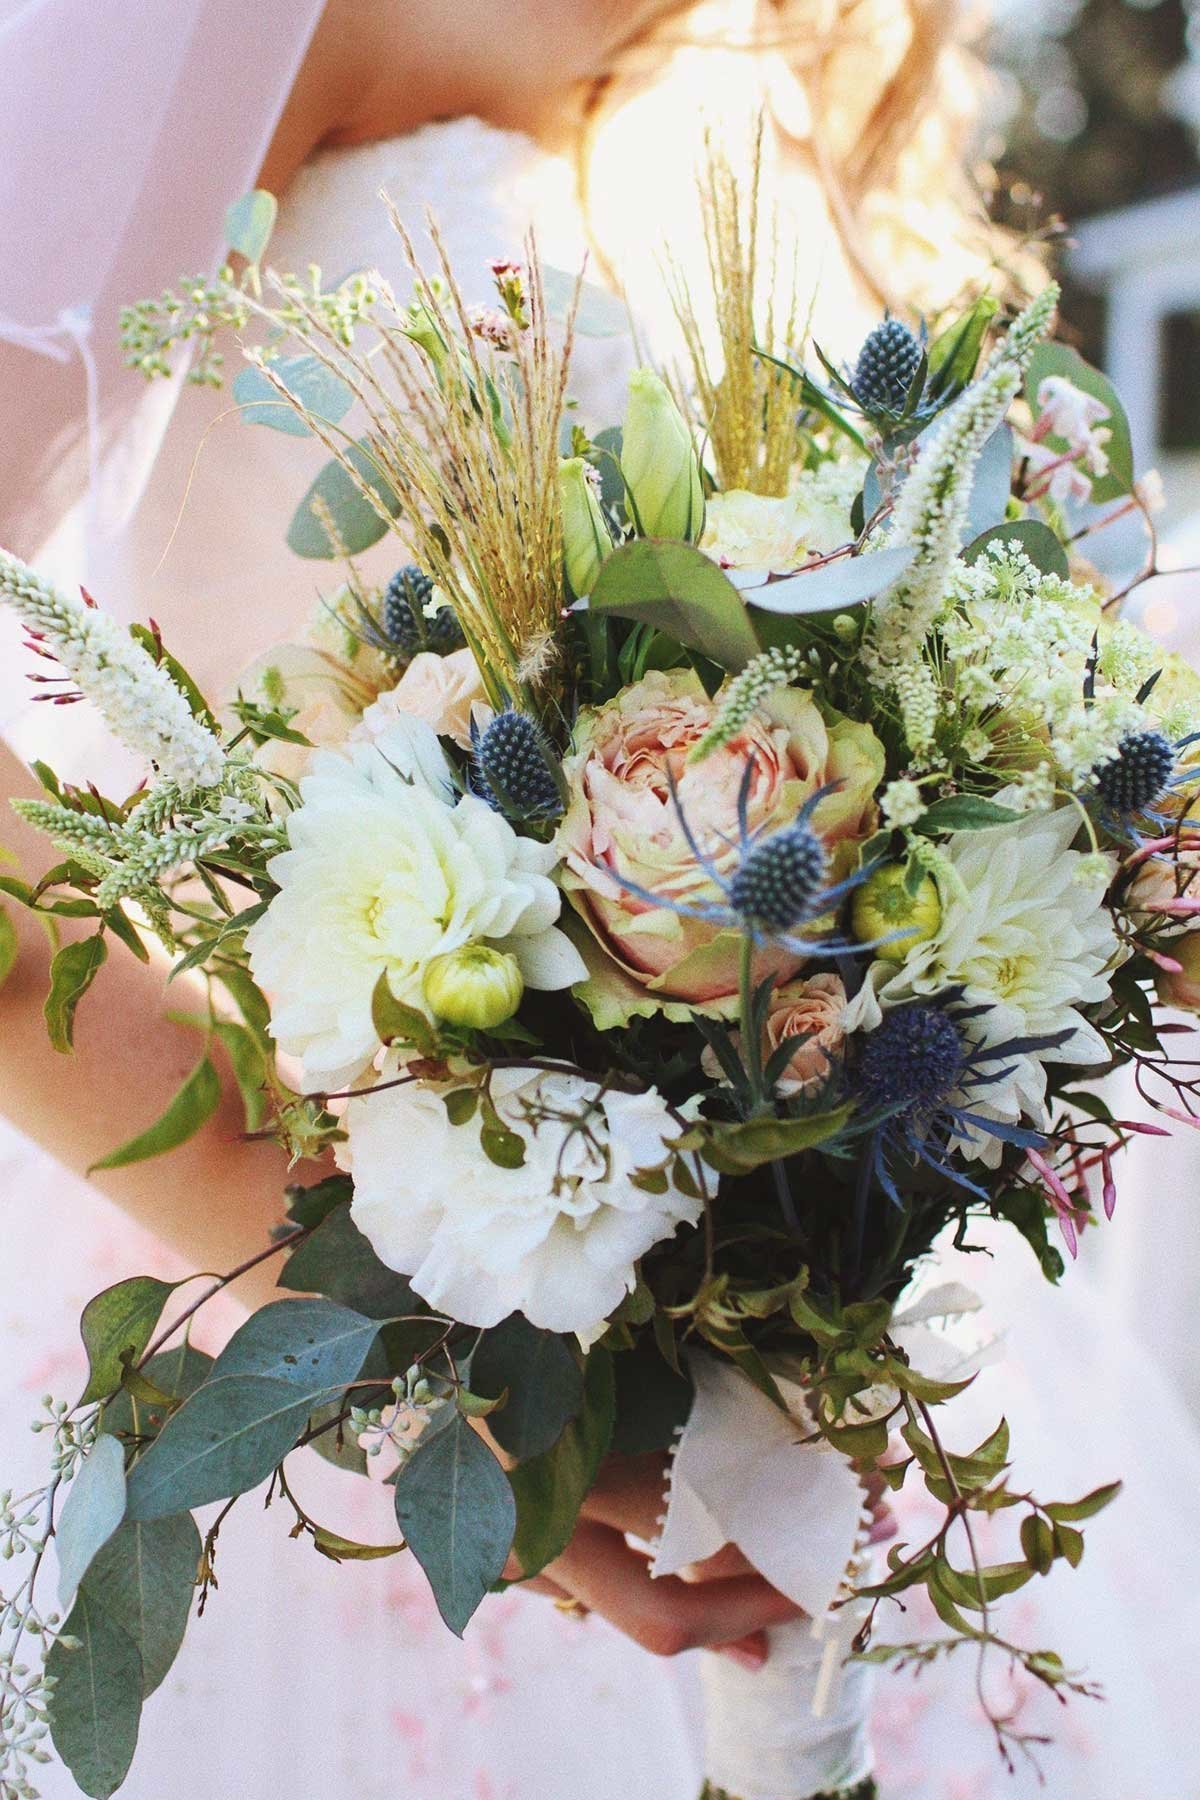 Spinola-Farm-and-Co-Brentwood-California-Shop-Wedding-Event-Florist-Planning-Workshops80A65B64-0AE0-414A-8982-E0D79D96272D